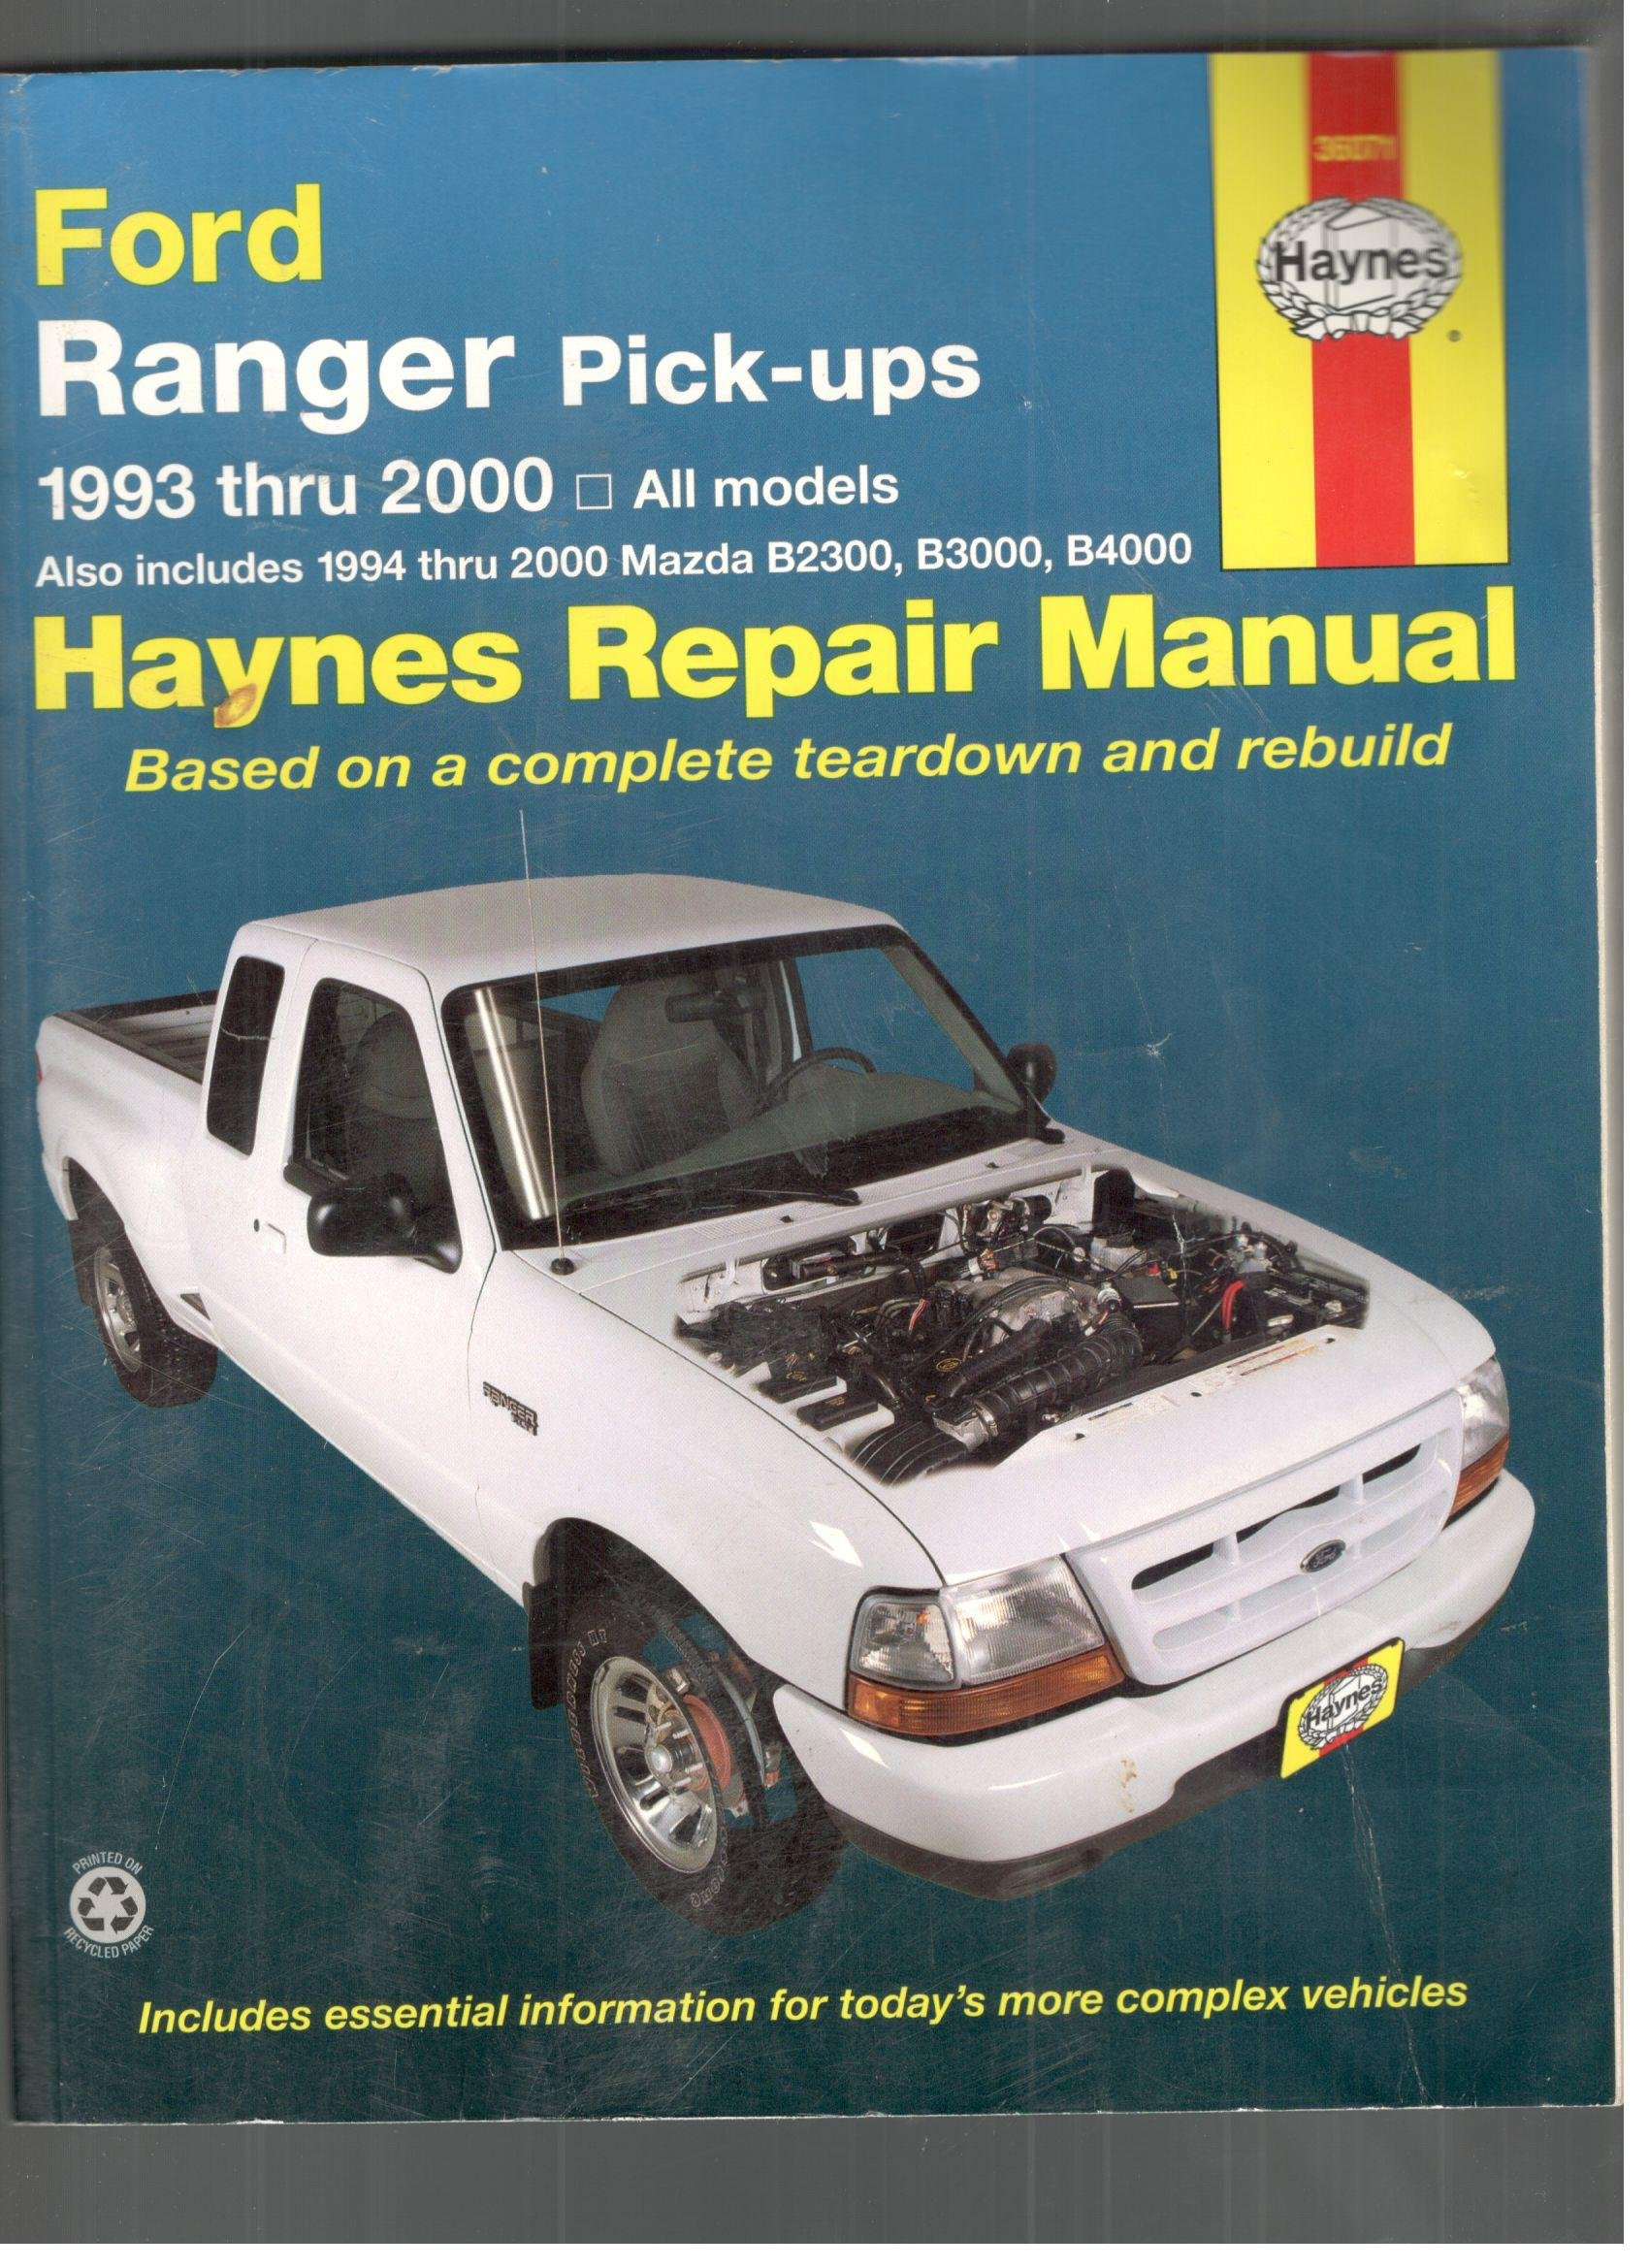 Haynes Repair Manual: Ford Ranger Pick-Ups, 1993 Thru 2000: Haynes:  Amazon.com: Books